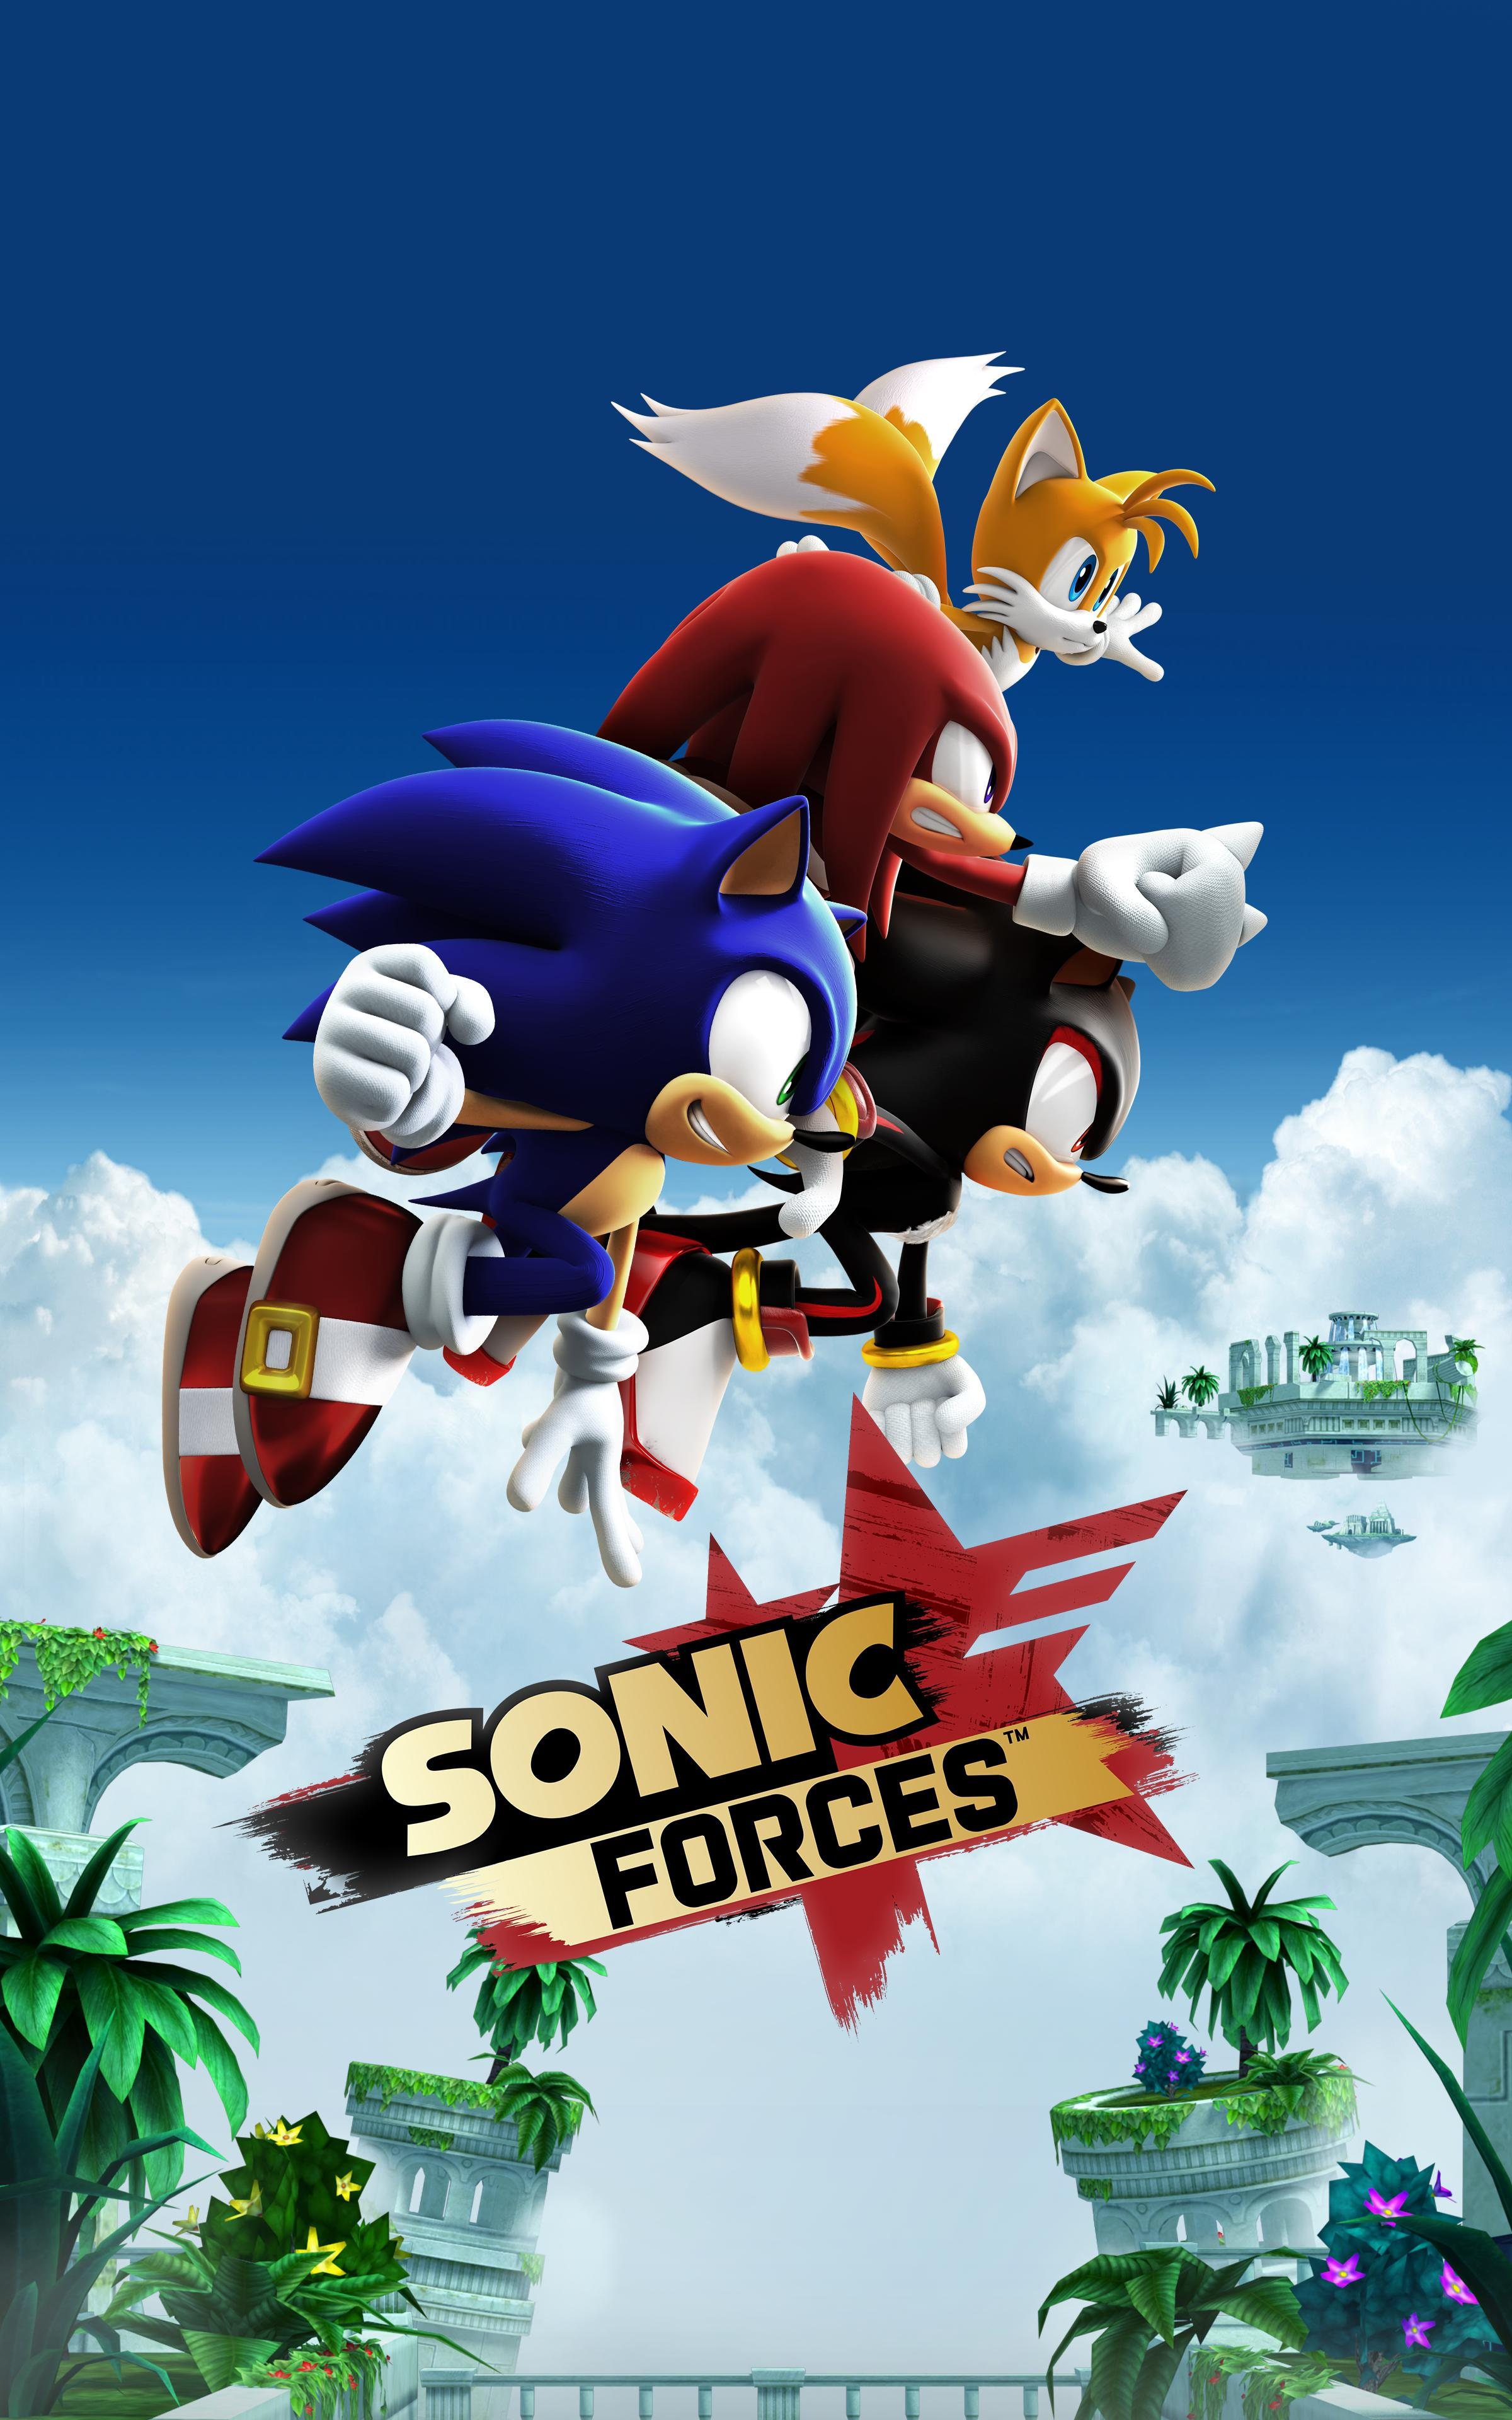 Sonic Forces for Android - APK Download